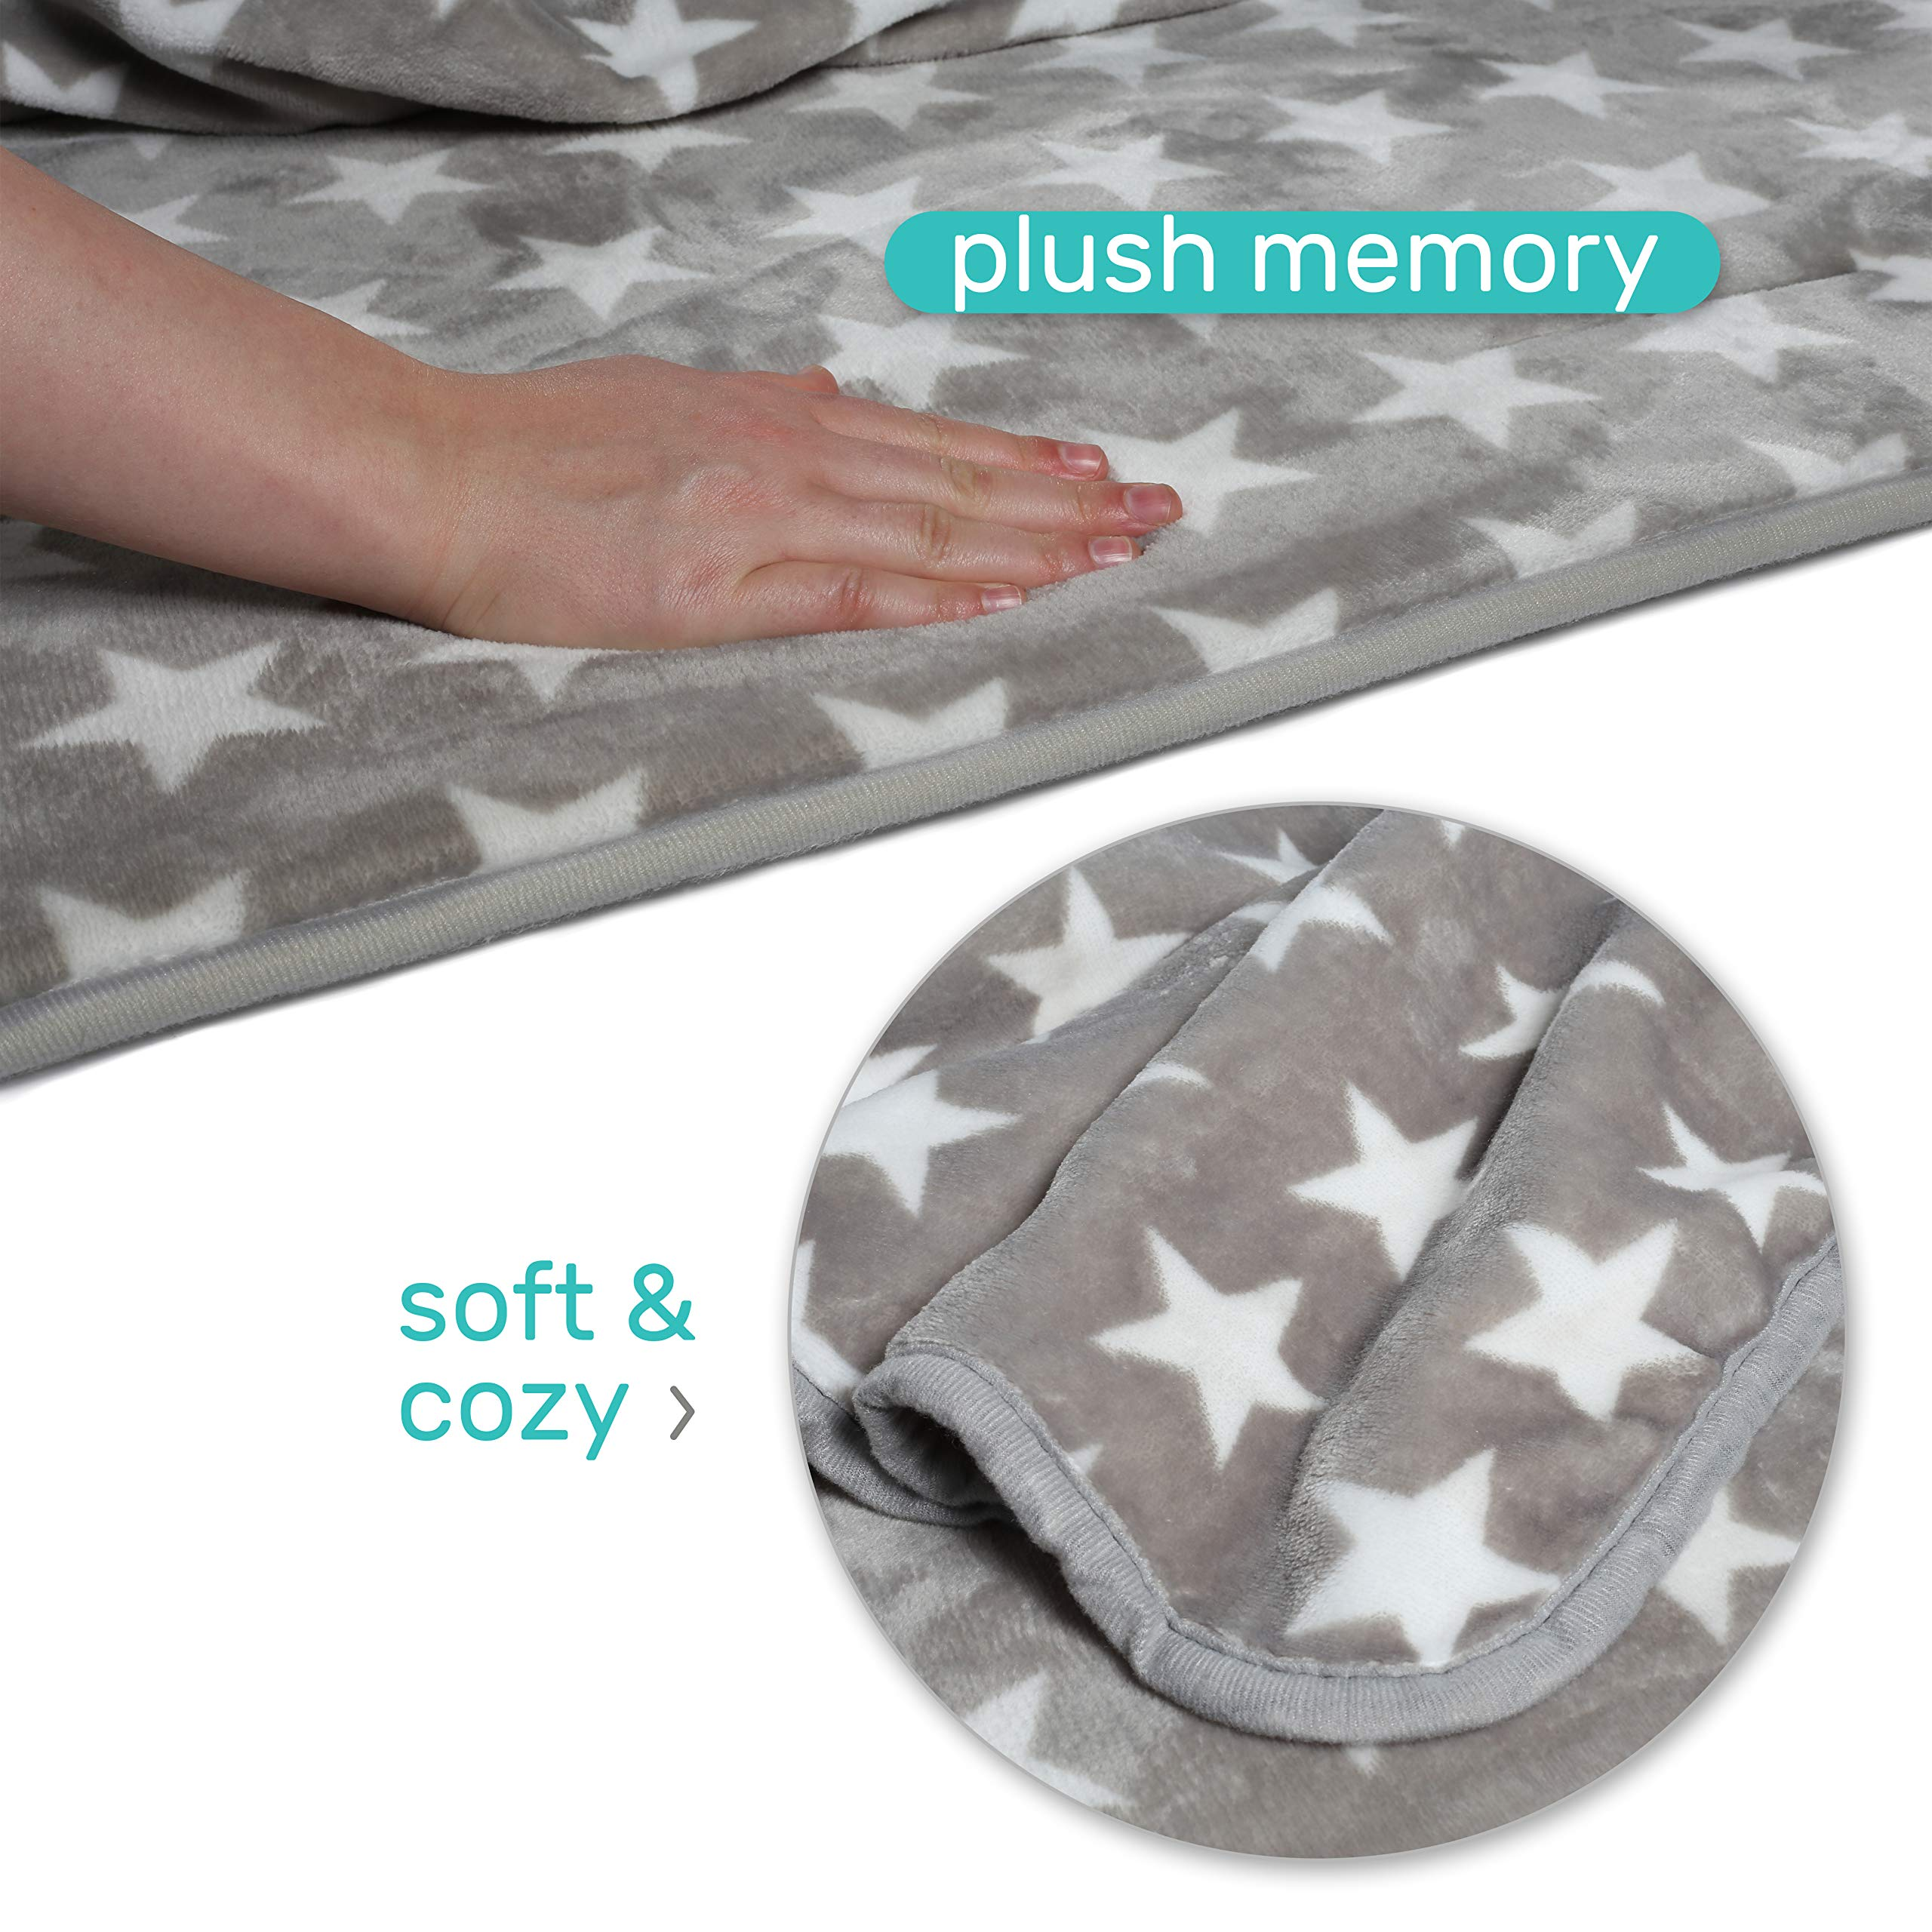 Milliard -Memory Foam- Nap Mat Roll Stars with Fuzzy Blanket and Removable Pillow, Machine Washing for Toddler Daycare Preschool Kindergarten and Sleepovers by Milliard (Image #5)